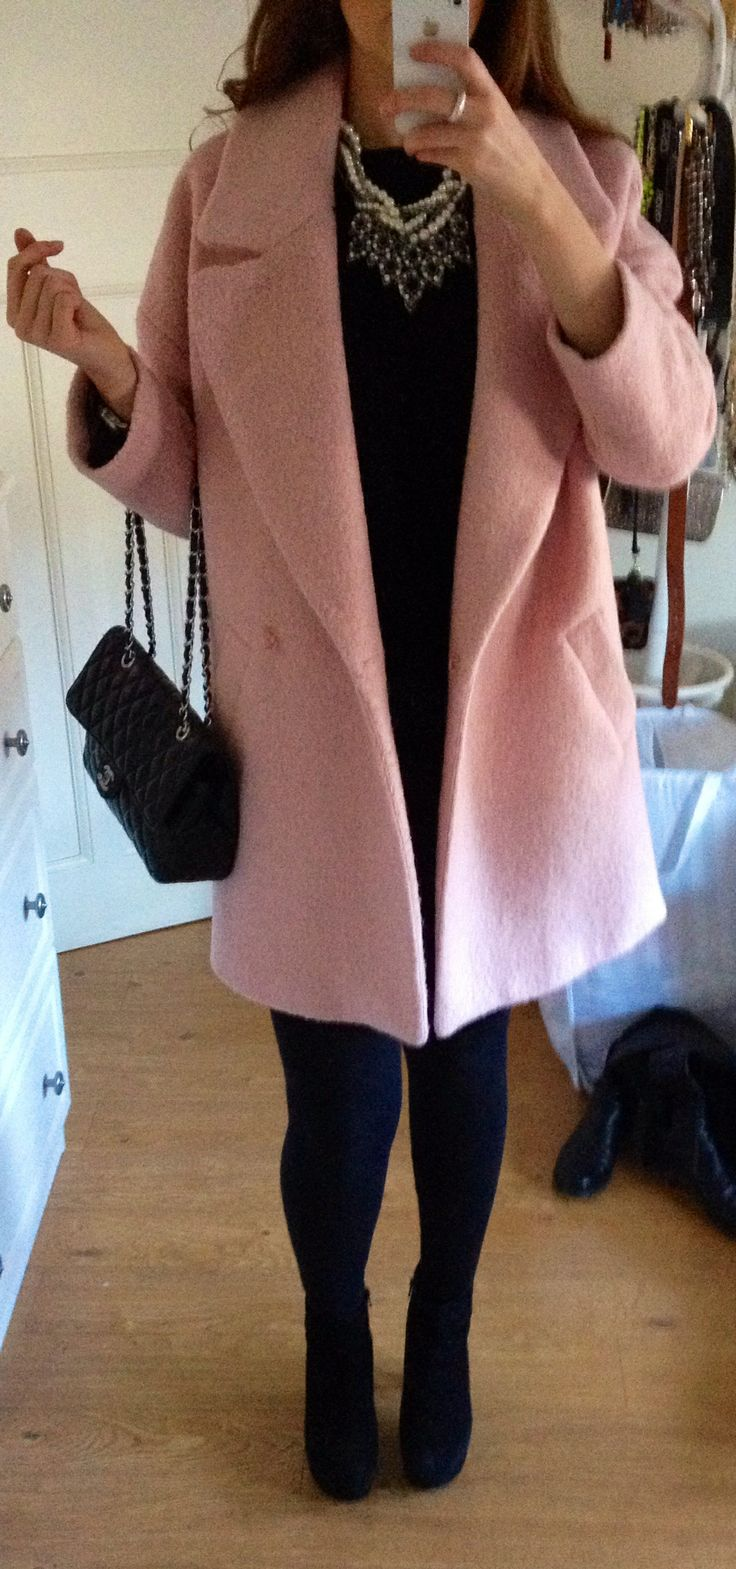 River Island pink coat - Zara statement necklace - Cos dress - Dune boots